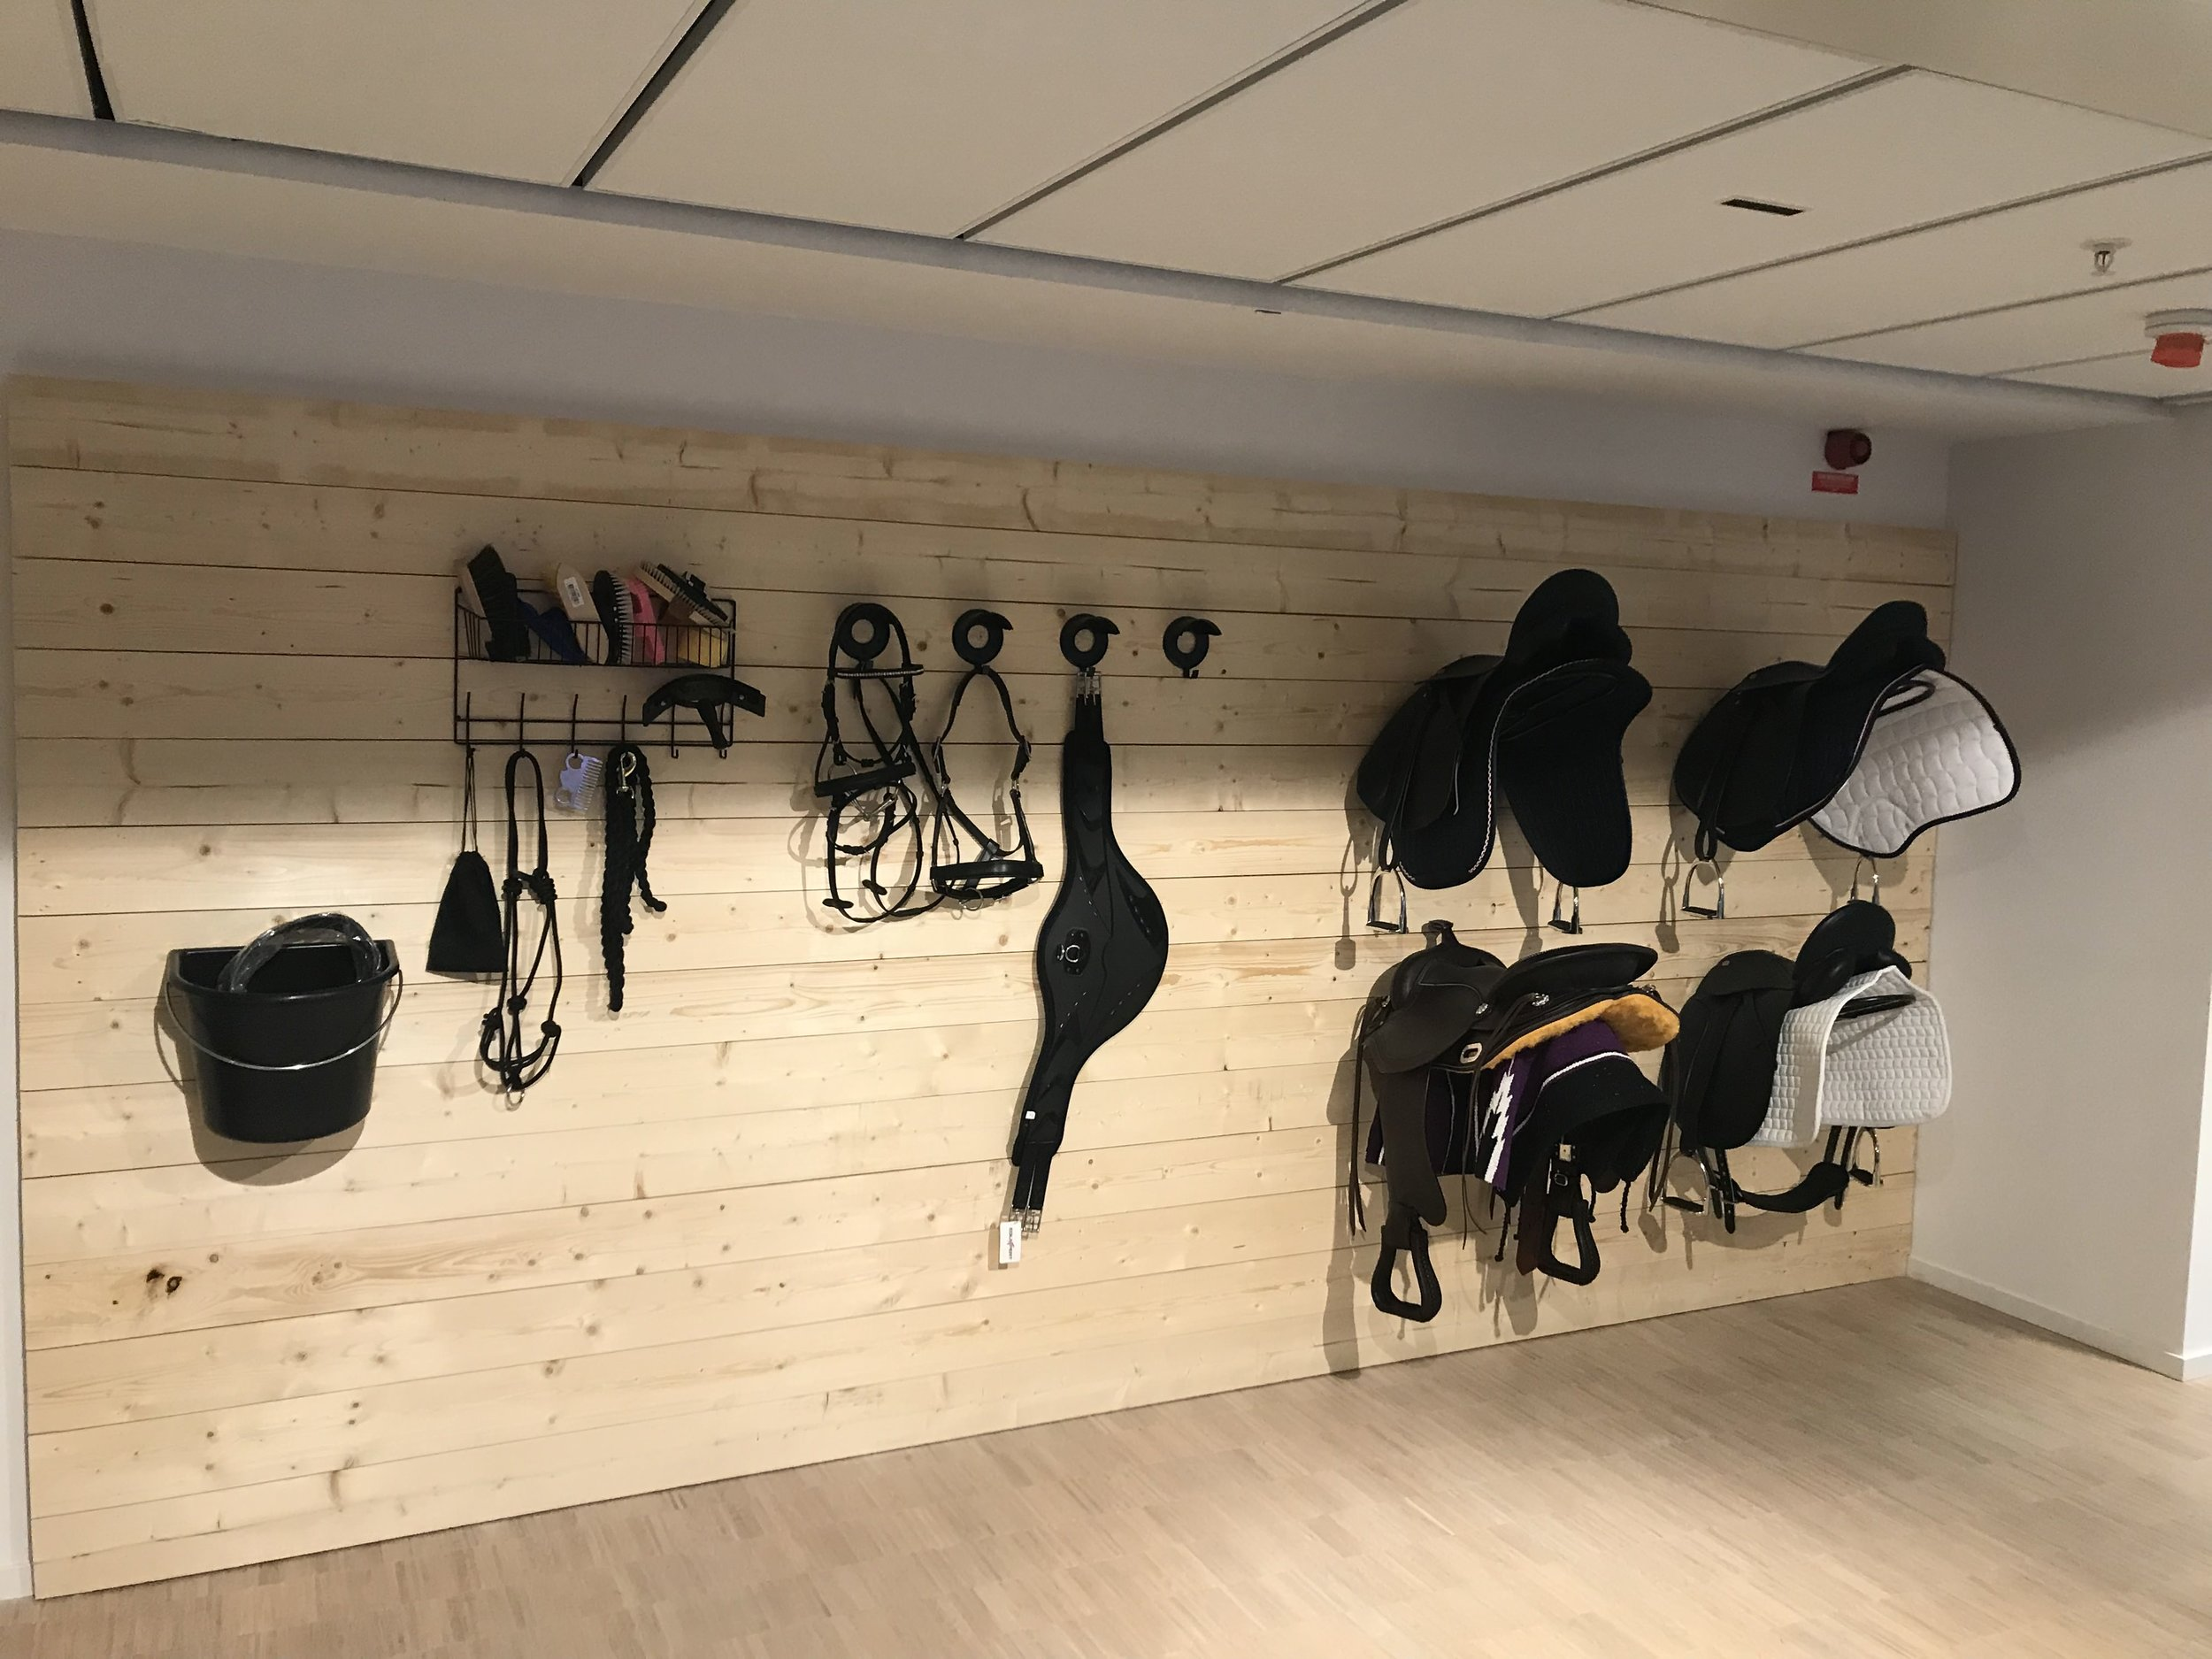 SSO HQ may well be the only game dev studio with its own tack room.